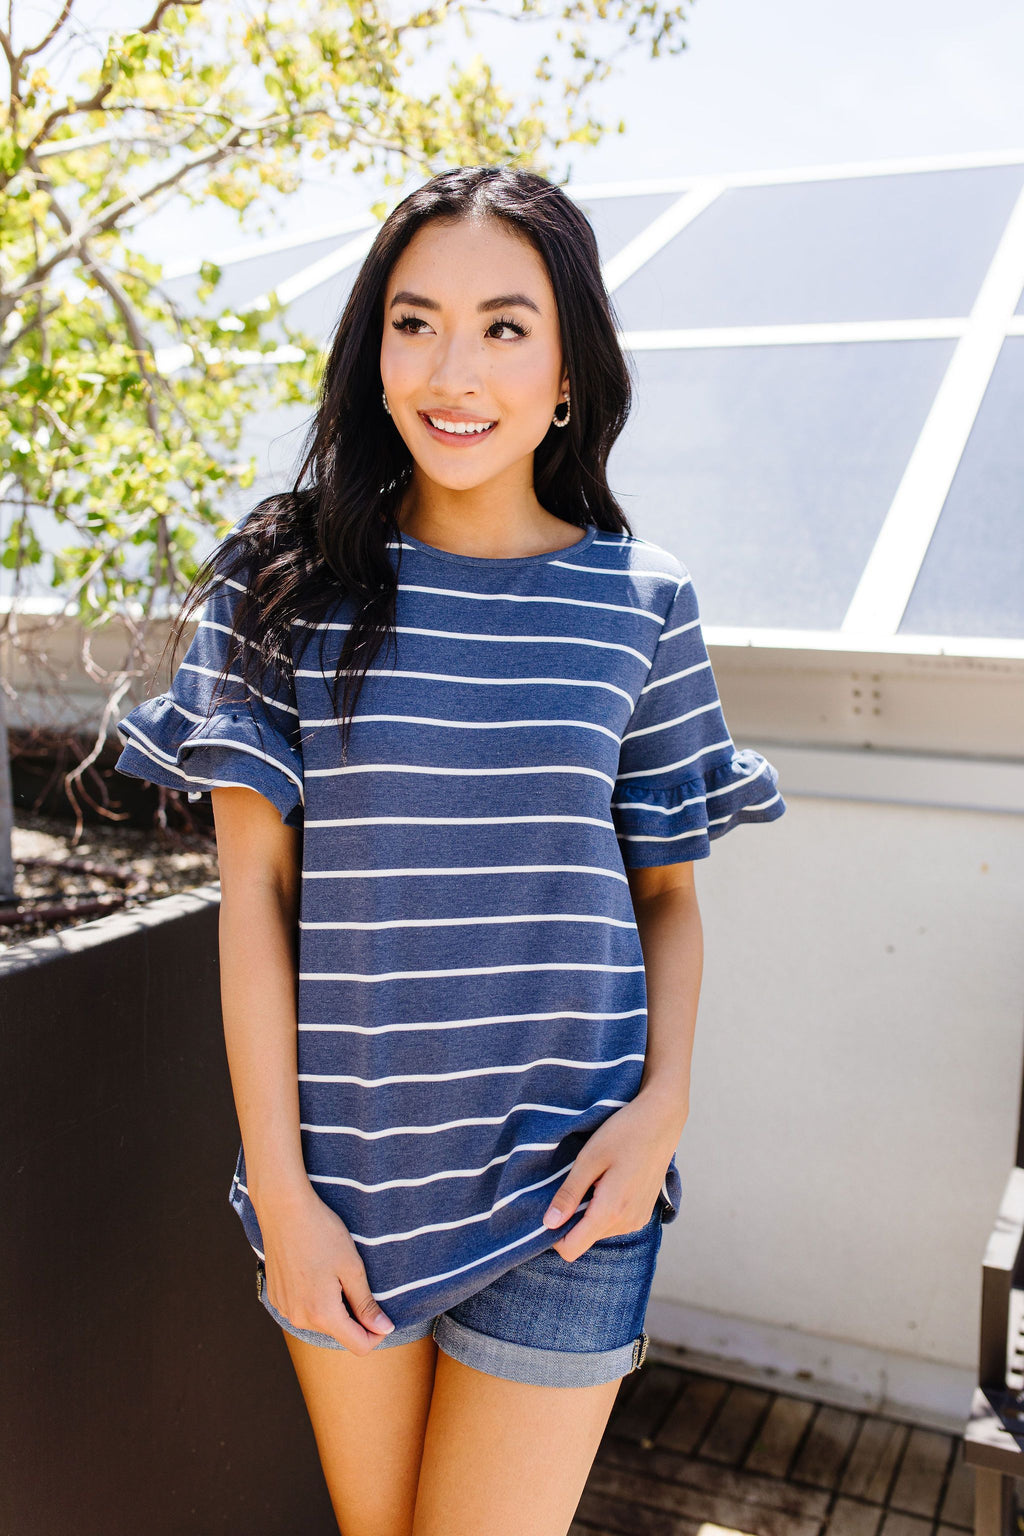 Make It A Double Striped Top-1XL, 2XL, 3XL, 4TH2020, 6-23-2020, 7-3-2020, Bonus, Group A, Group B, Group C, Large, Medium, Plus, Small, Tops, XL, XS-Womens Artisan USA American Made Clothing Accessories